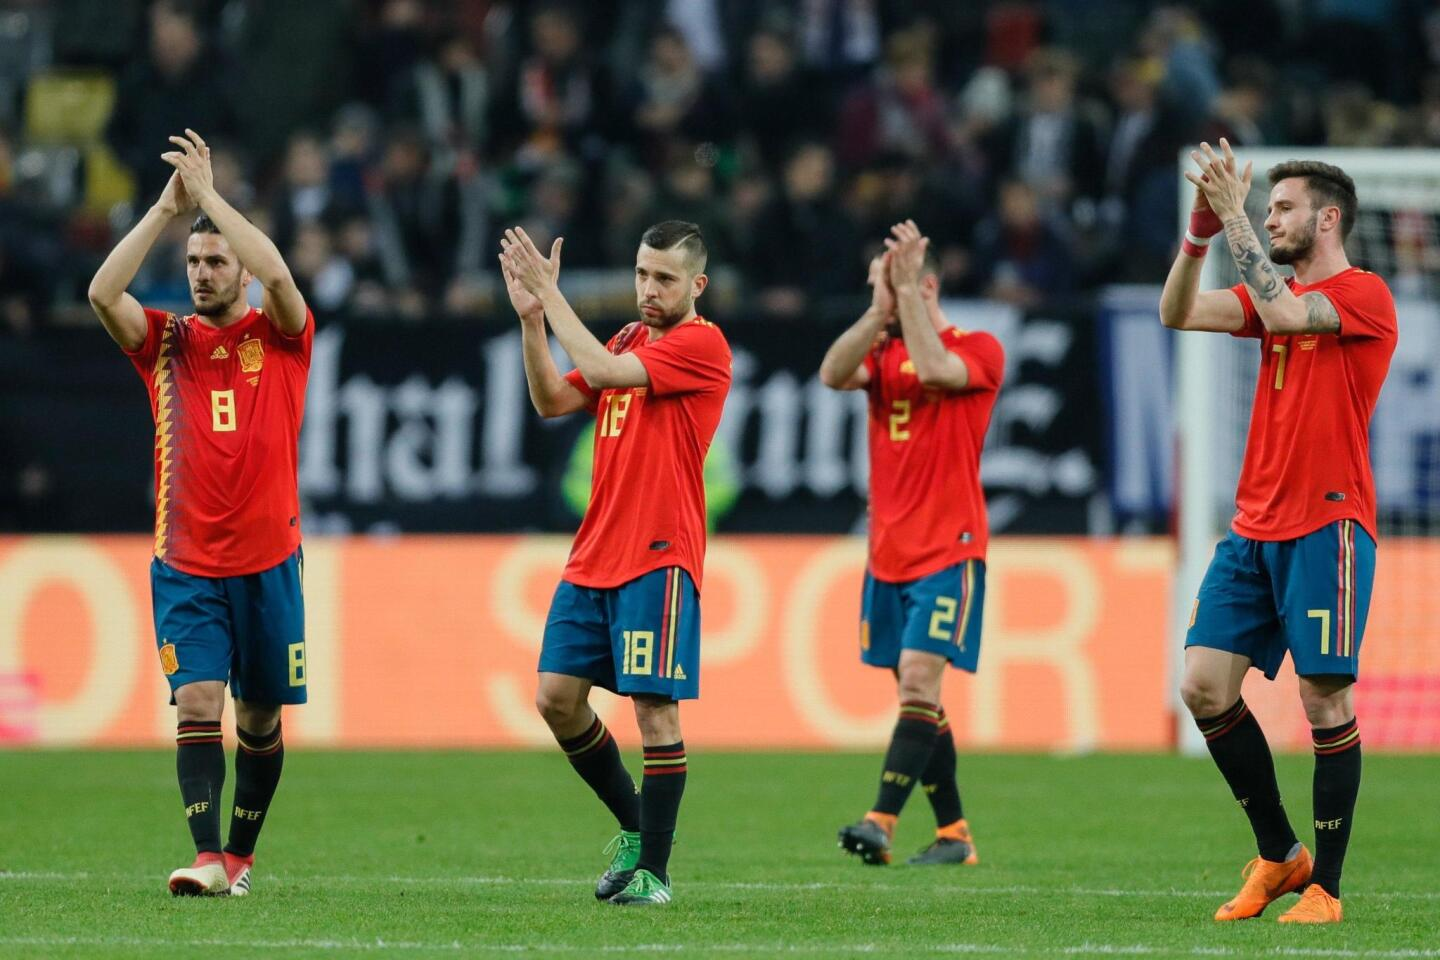 Duesseldorf (Germany), 23/03/2018.- (L-R) Spain's Koke, Jordi Alba, Daniel Carvajal and Saukl Niguez react after the international friendly soccer match between Germany and Spain in Duesseldorf, Germany, 23 March 2018. (España, Futbol, Amistoso, Alemania) EFE/EPA/RONALD WITTEK ** Usable by HOY and SD Only **